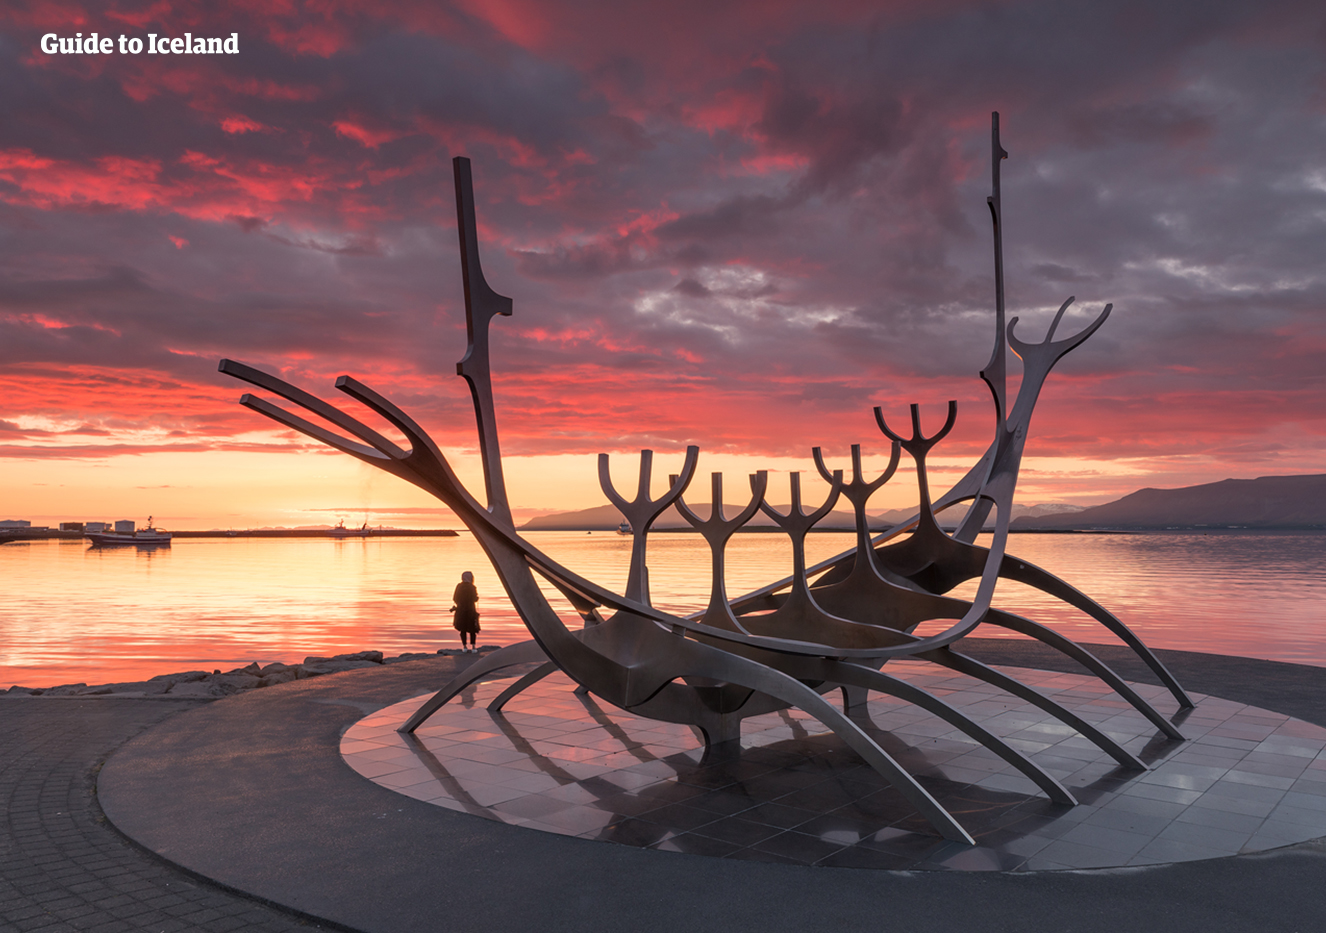 The Sun Voyager in Reykjavík is said to represent Iceland's adventurous spirit.